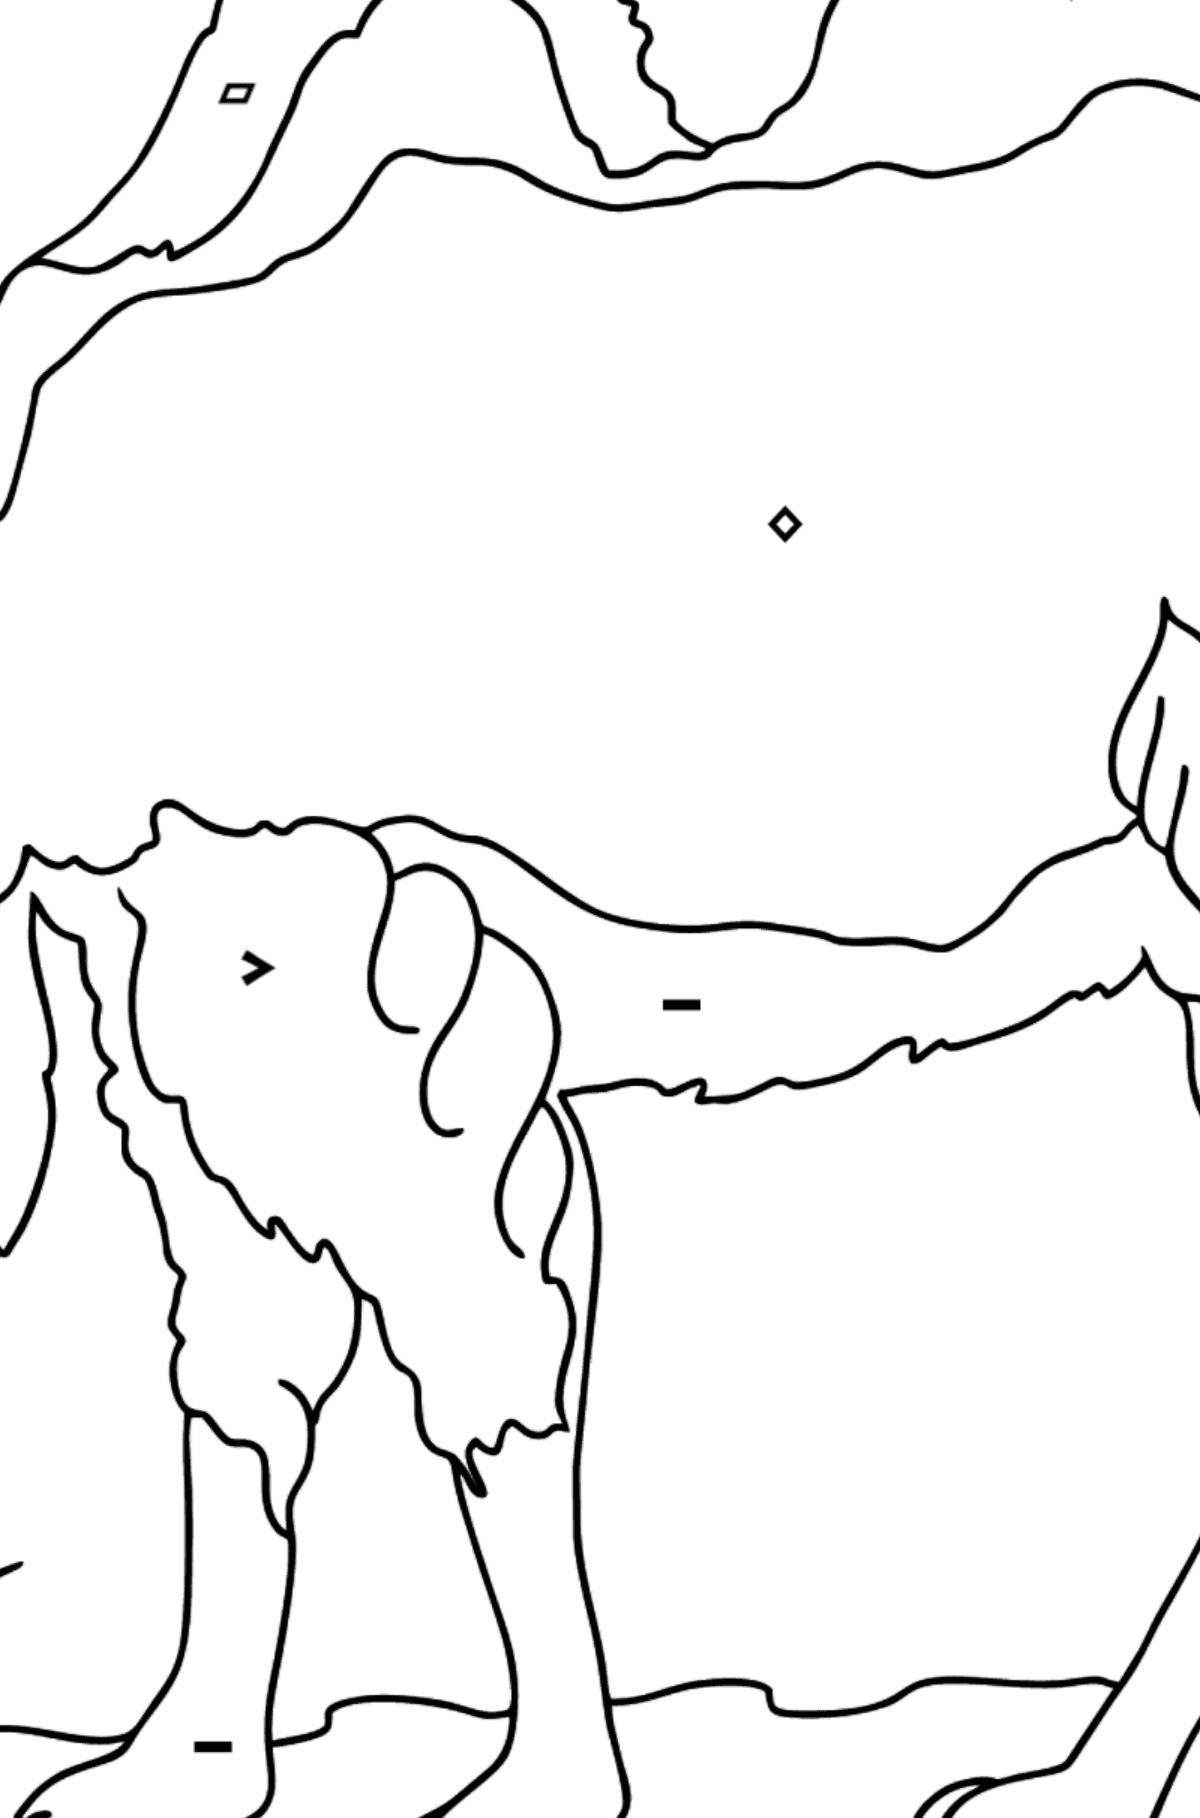 Coloring Page - A Camel in the Desert - Coloring by Symbols and Geometric Shapes for Kids